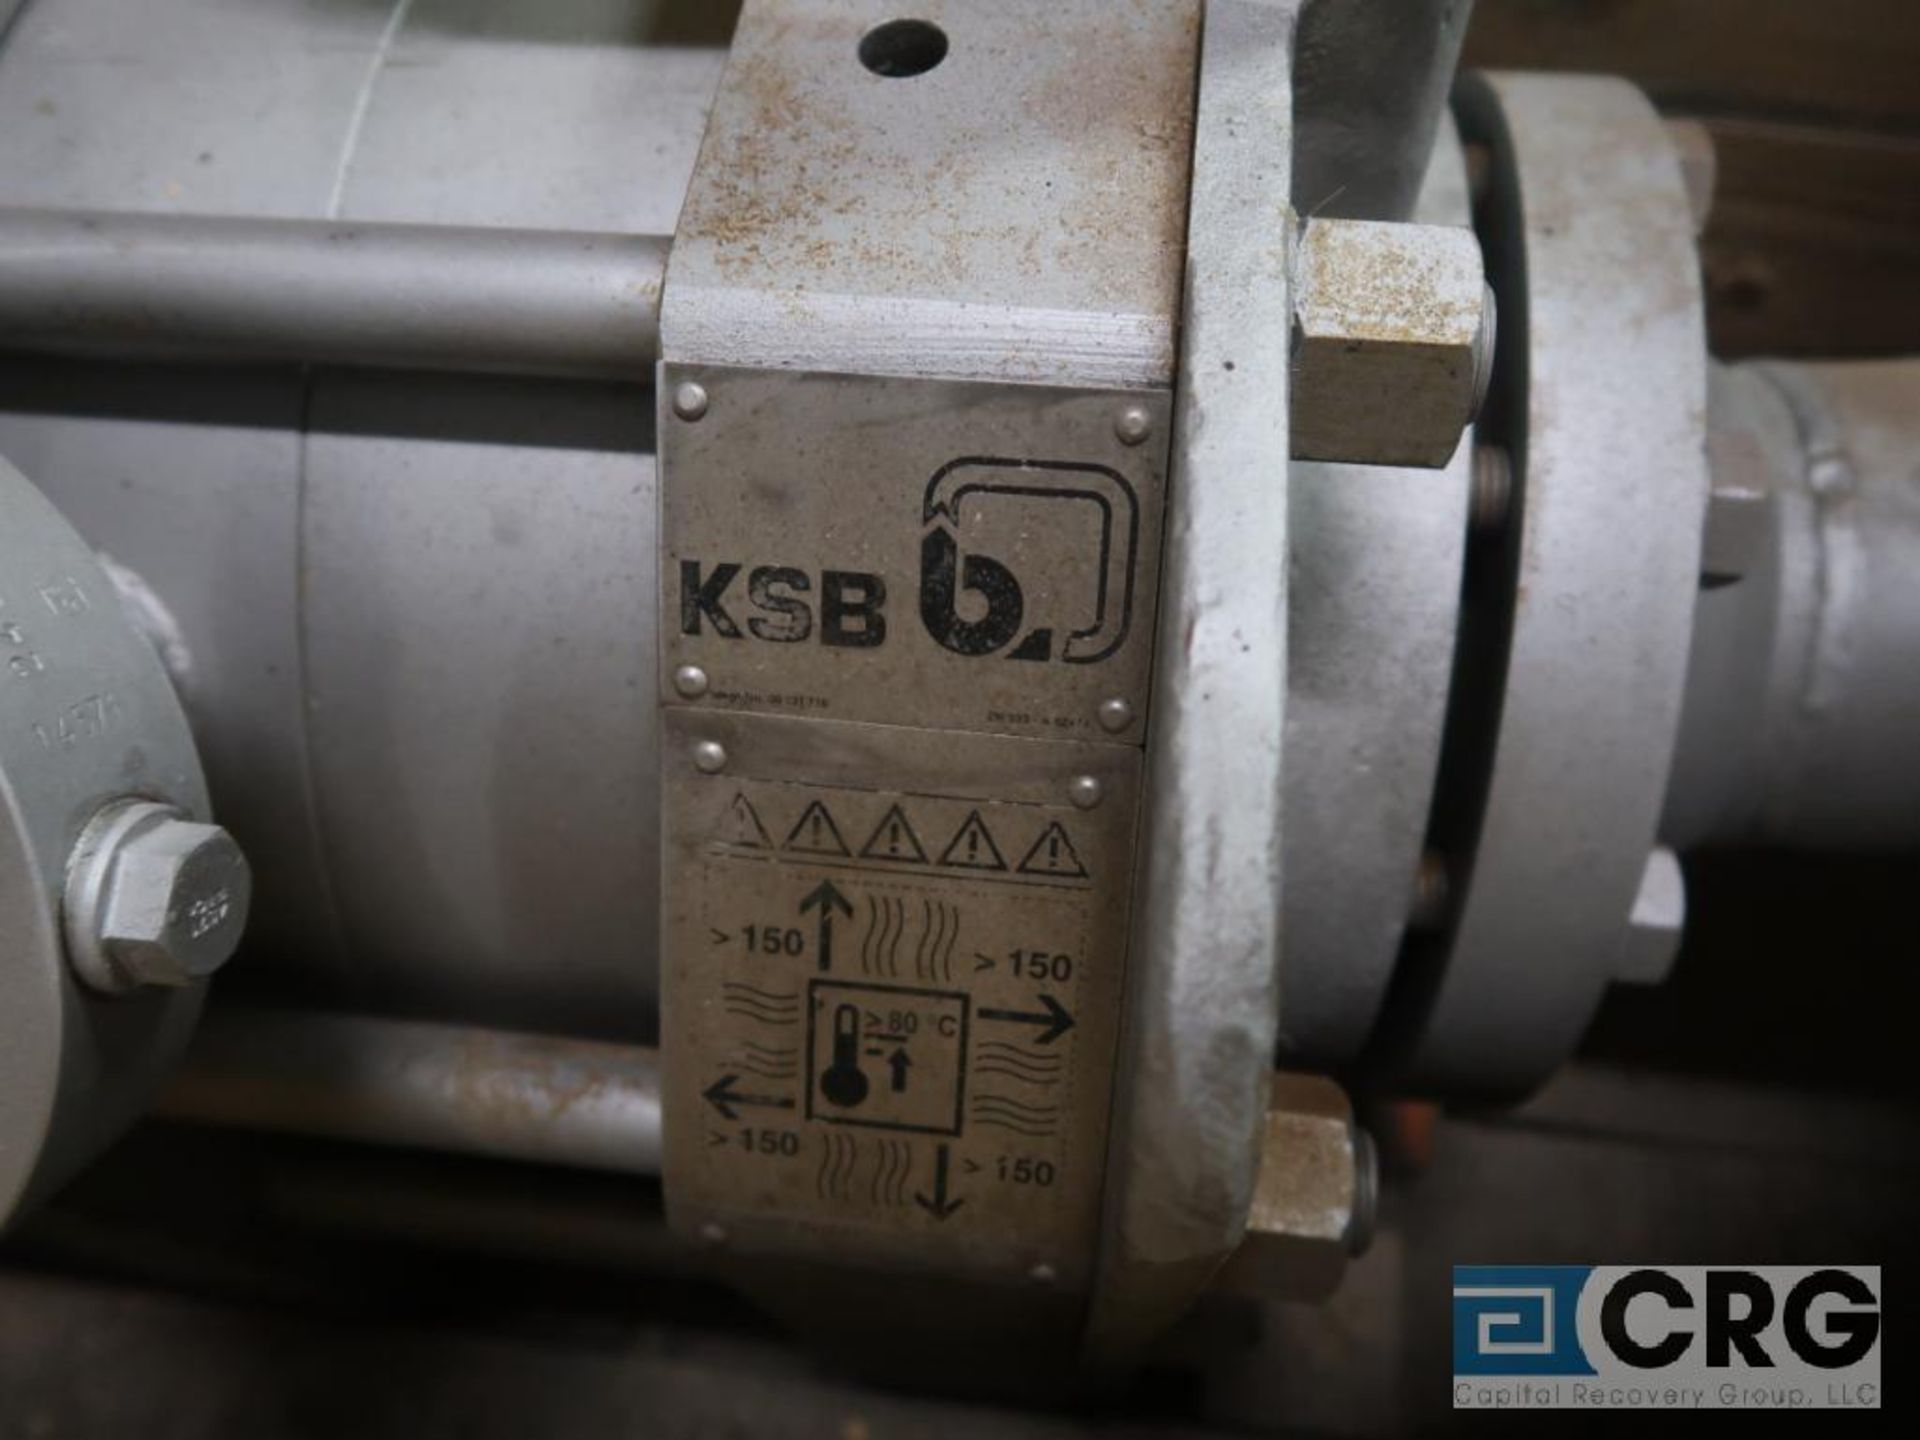 KSB H3M 3/5 feed water pump, 360 GPM (Basement Stores) - Image 5 of 5